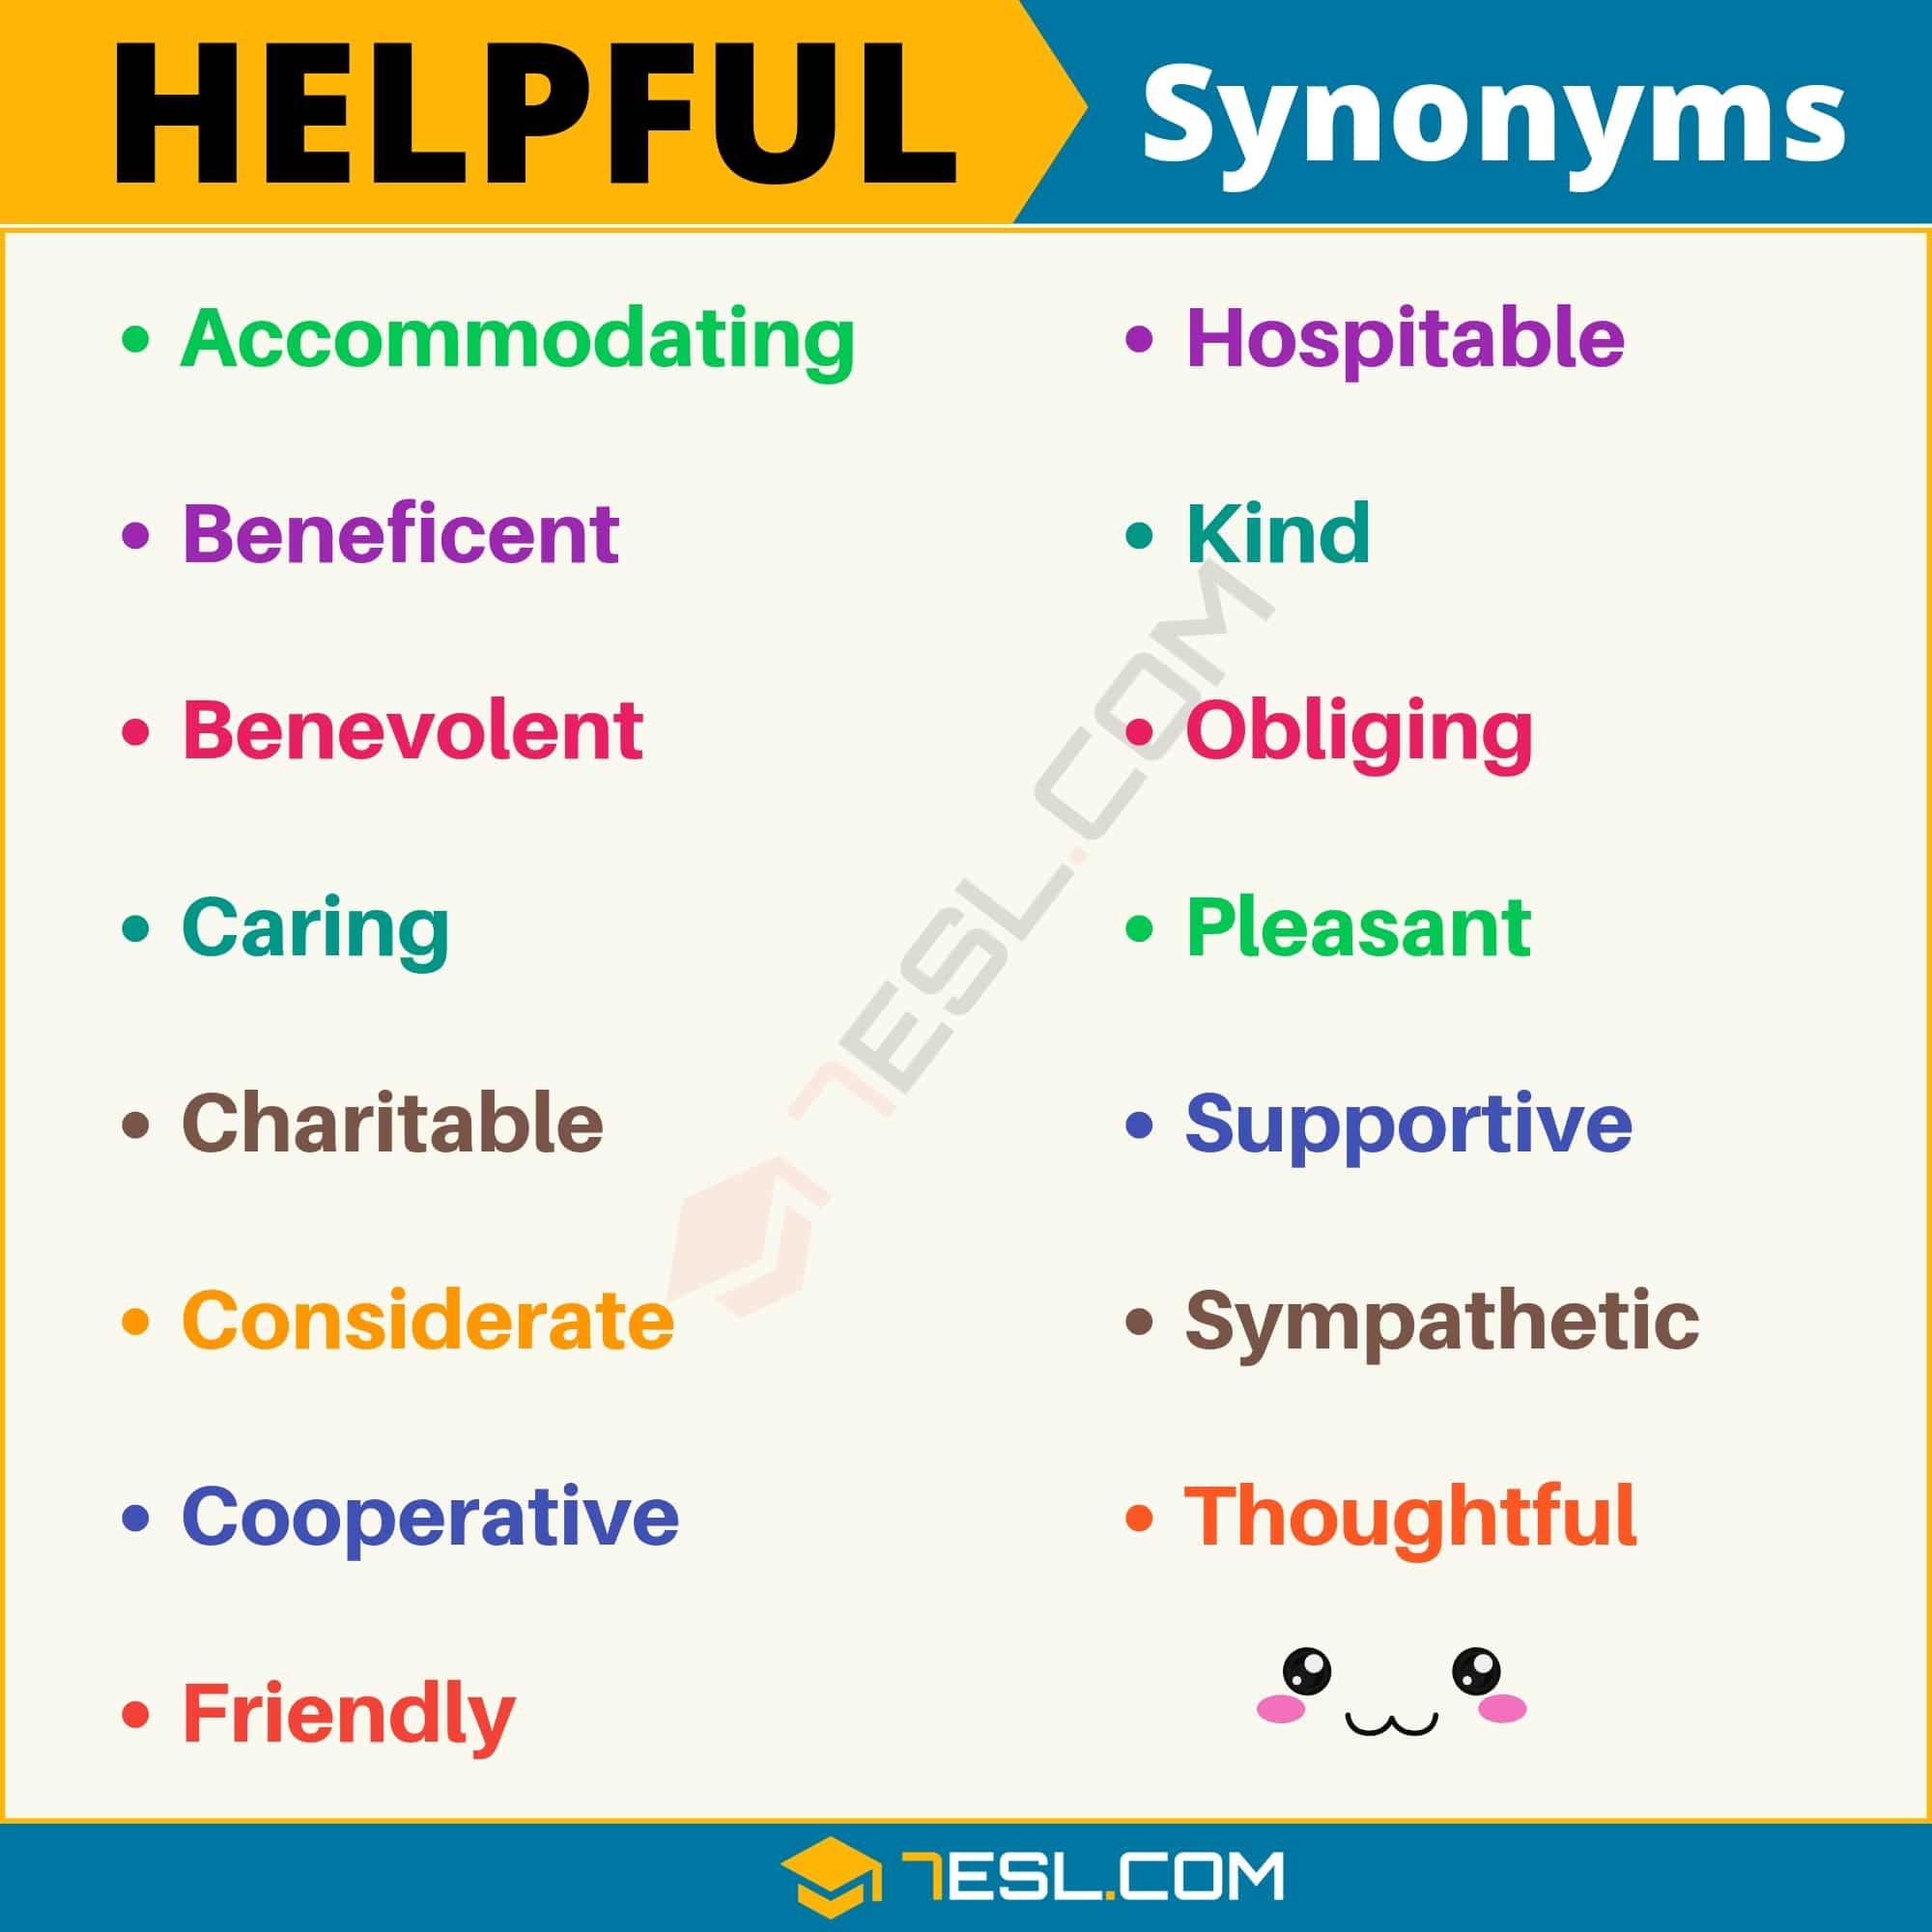 HELPFUL Synonym: List of 15 Synonyms for Helpful with Examples